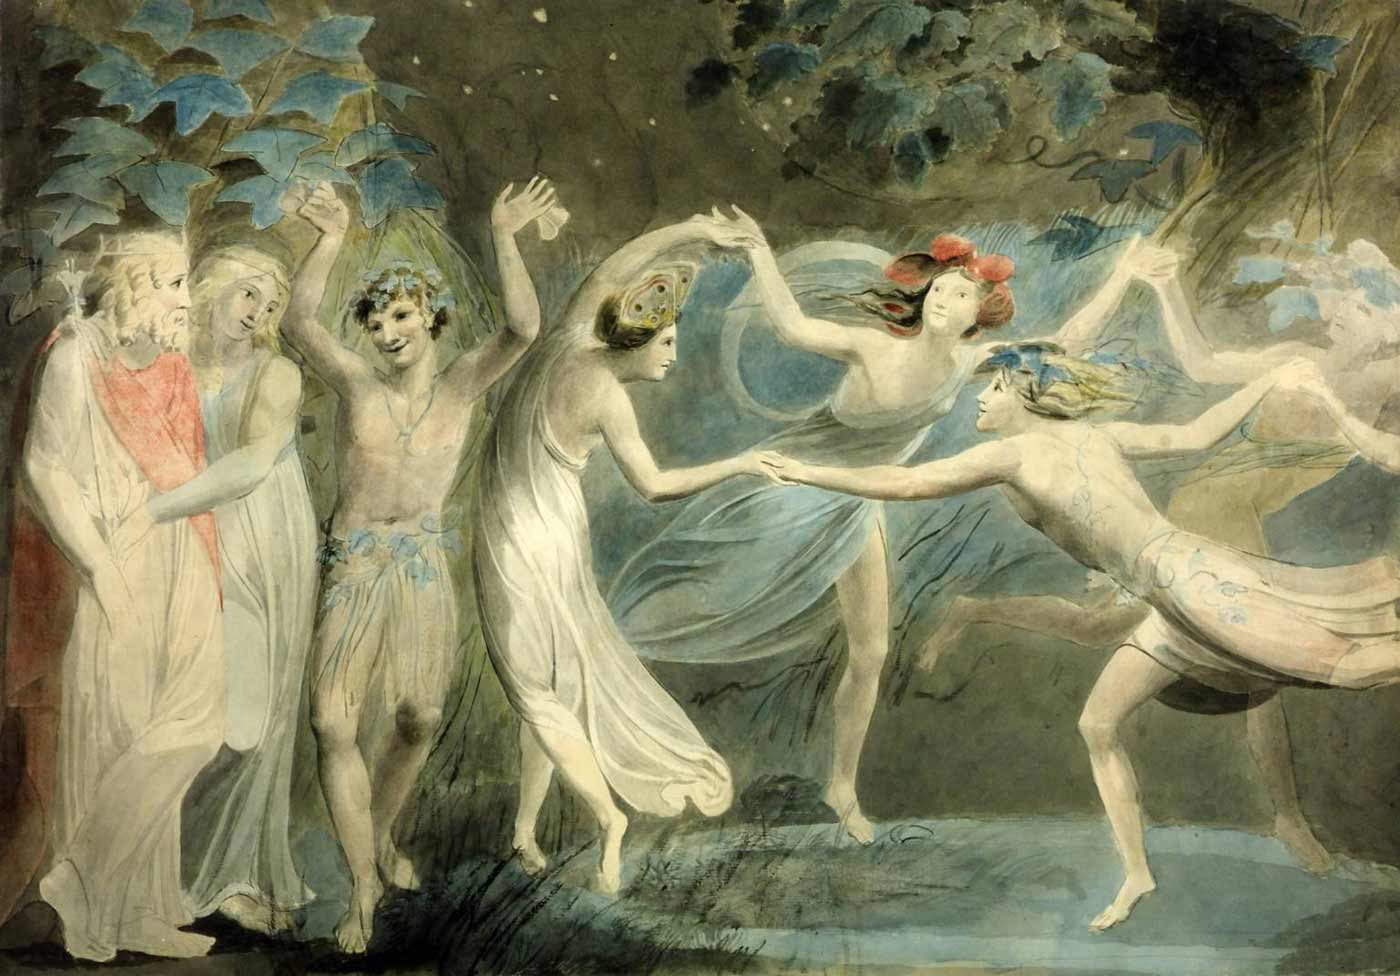 """Oberon, Titania and Puck with Fairies Dancing. From William Shakespeare's """"A Midsummer Night's Dream."""""""